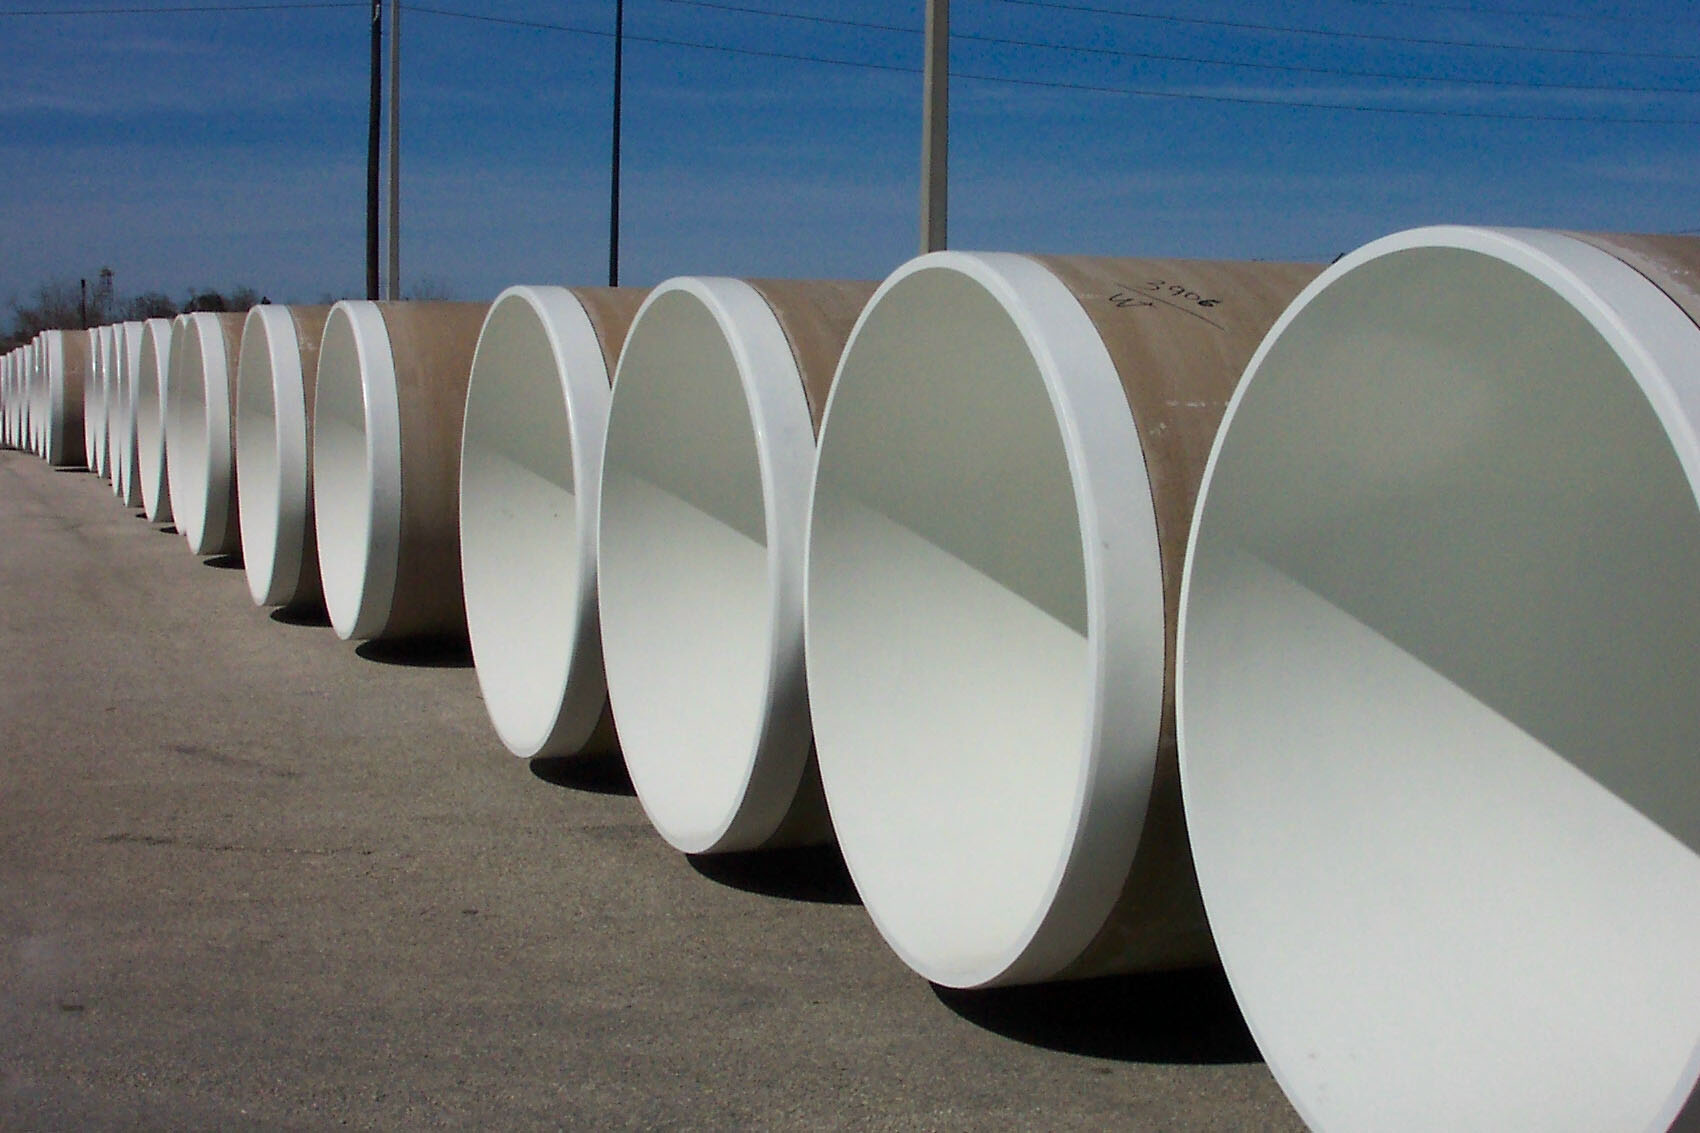 Centrifugally cast fiberglass-reinforced polymer mortar (CCFRPM) Hobas pipe is inherently corrosion resistant and lasts 100 years or more providing a very ... & Hobas Pipe USA Rolls Out CCFRPM Pipe - Underground Construction